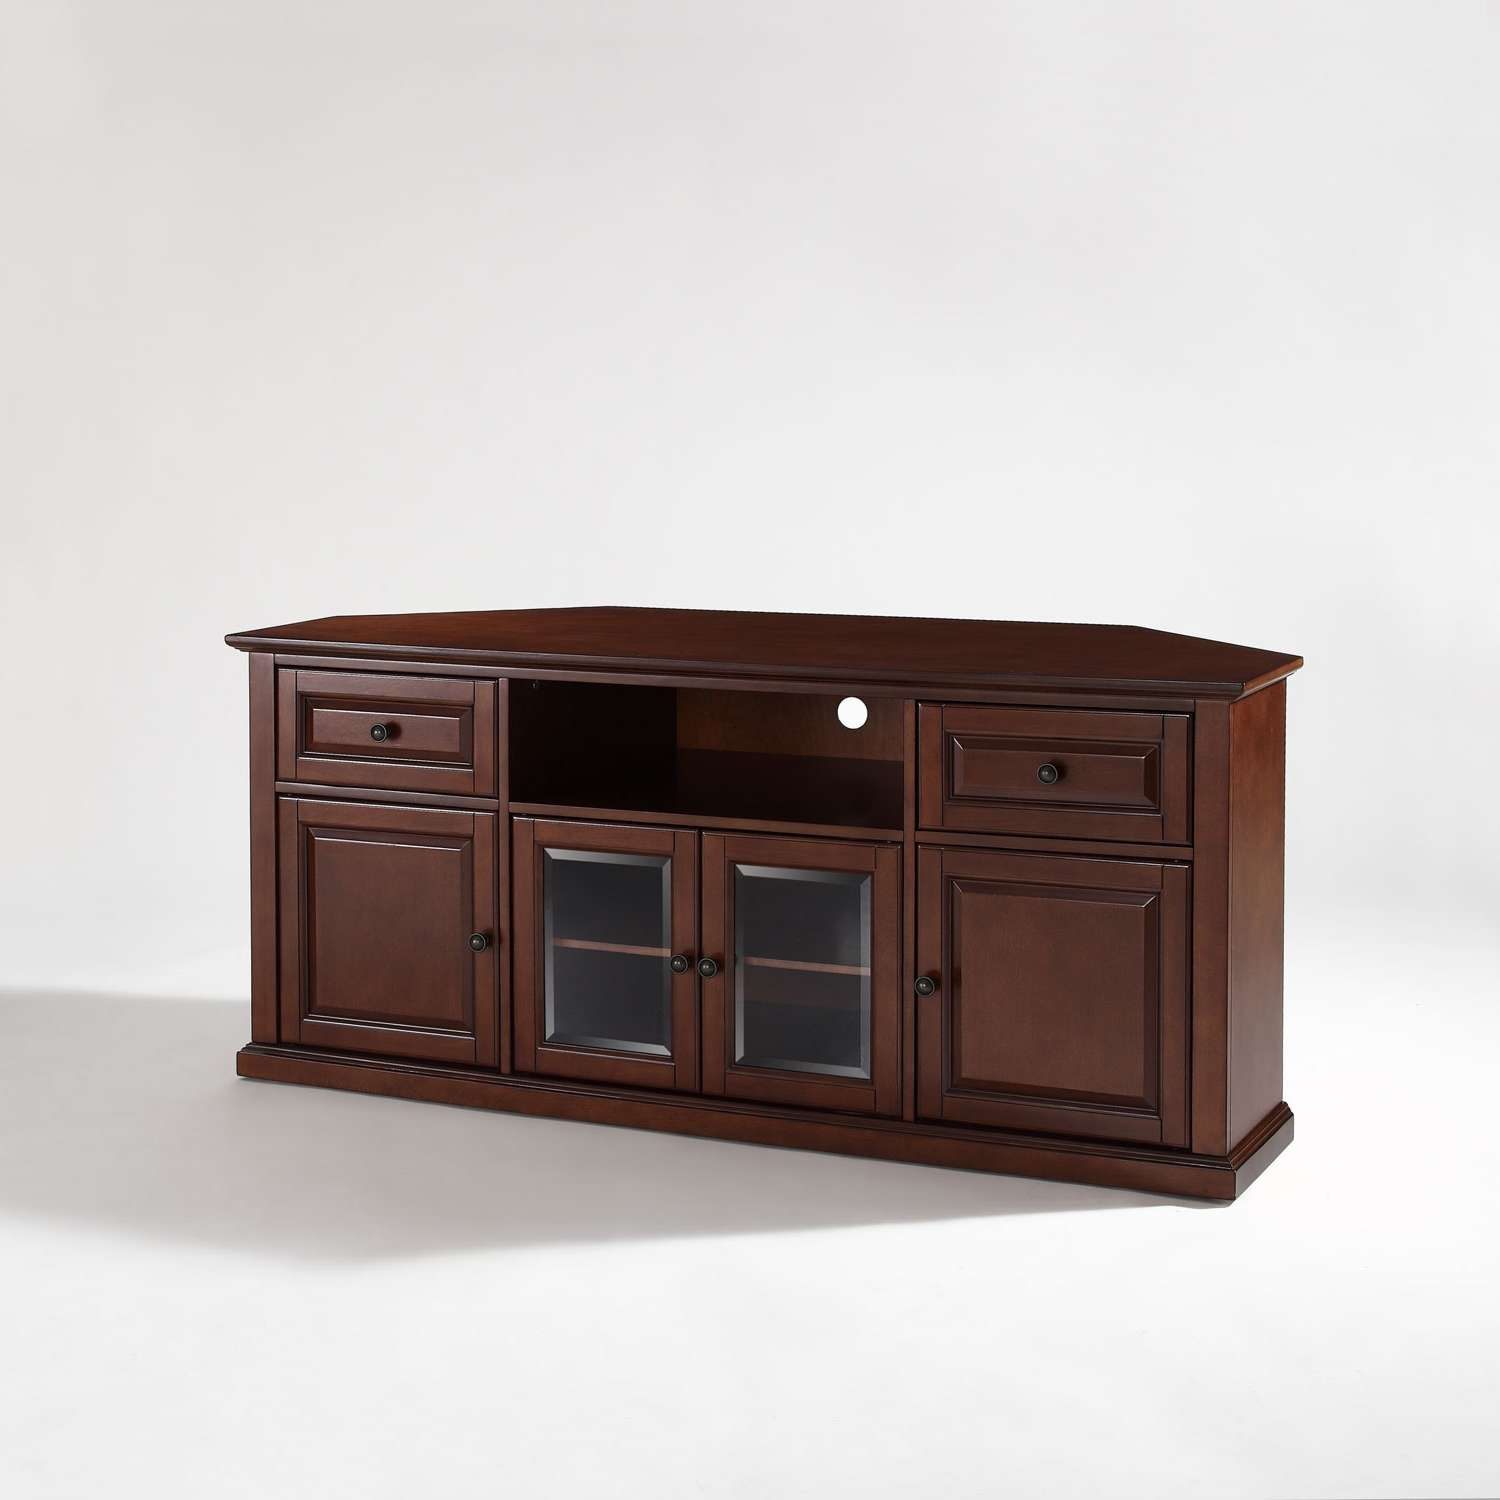 Tv Stands & Cabinets On Sale | Bellacor With 24 Inch Tall Tv Stands (View 14 of 15)